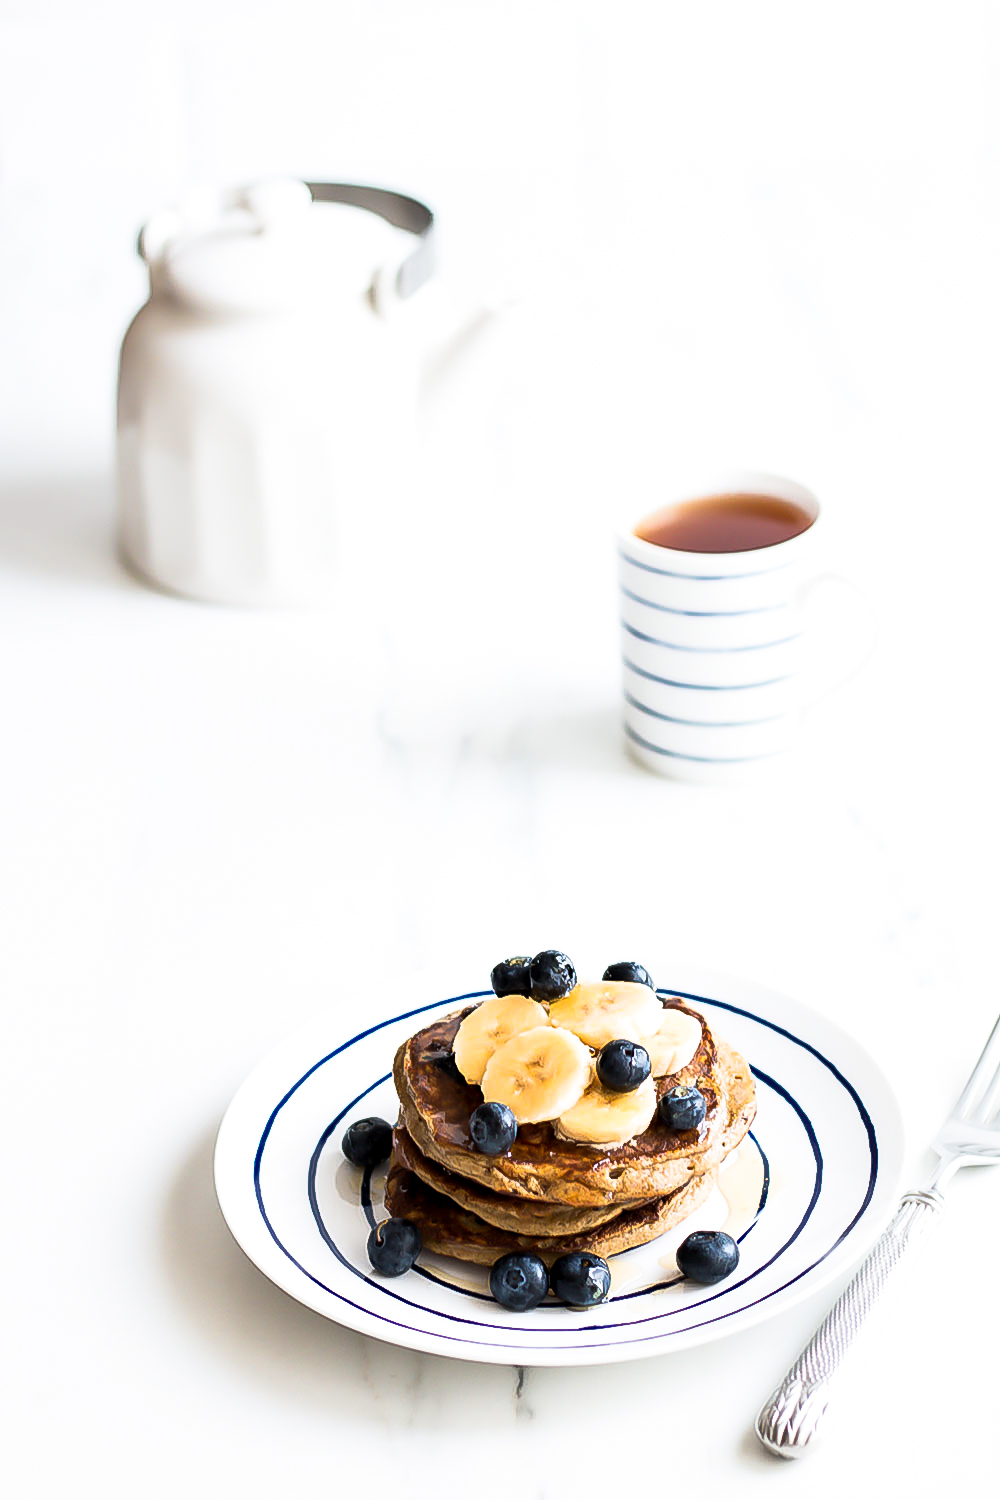 Starting the morning with high-protein foods, like these blueberry banana pancakes, is a surefire way to stay full until lunch and keep your energy levels steady! https://www.spotebi.com/recipes/blueberry-banana-pancakes/